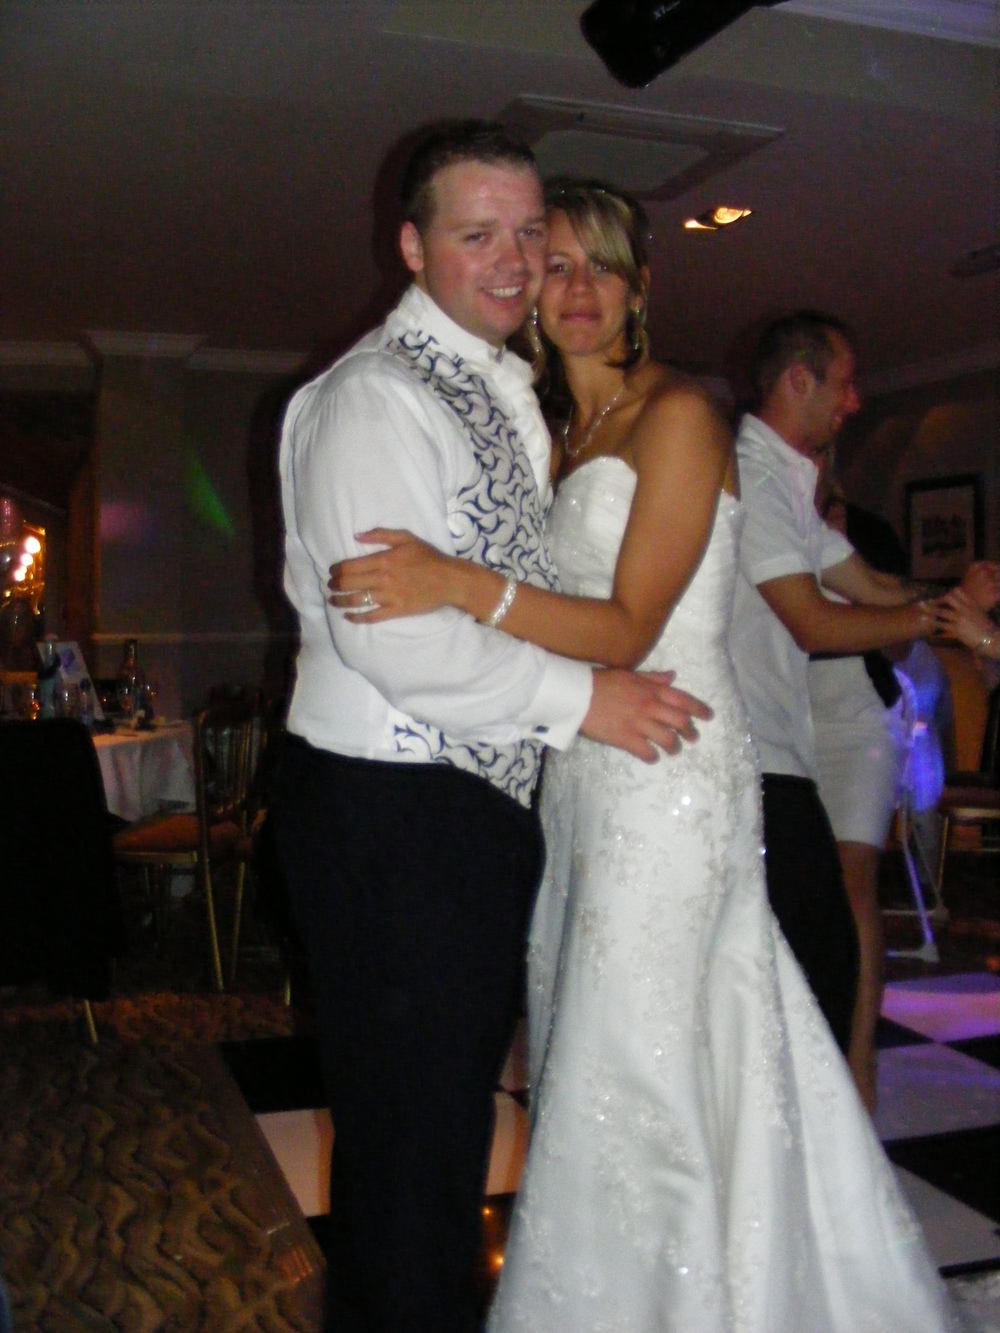 Becky and Keith at their actual wedding 6 years ago.